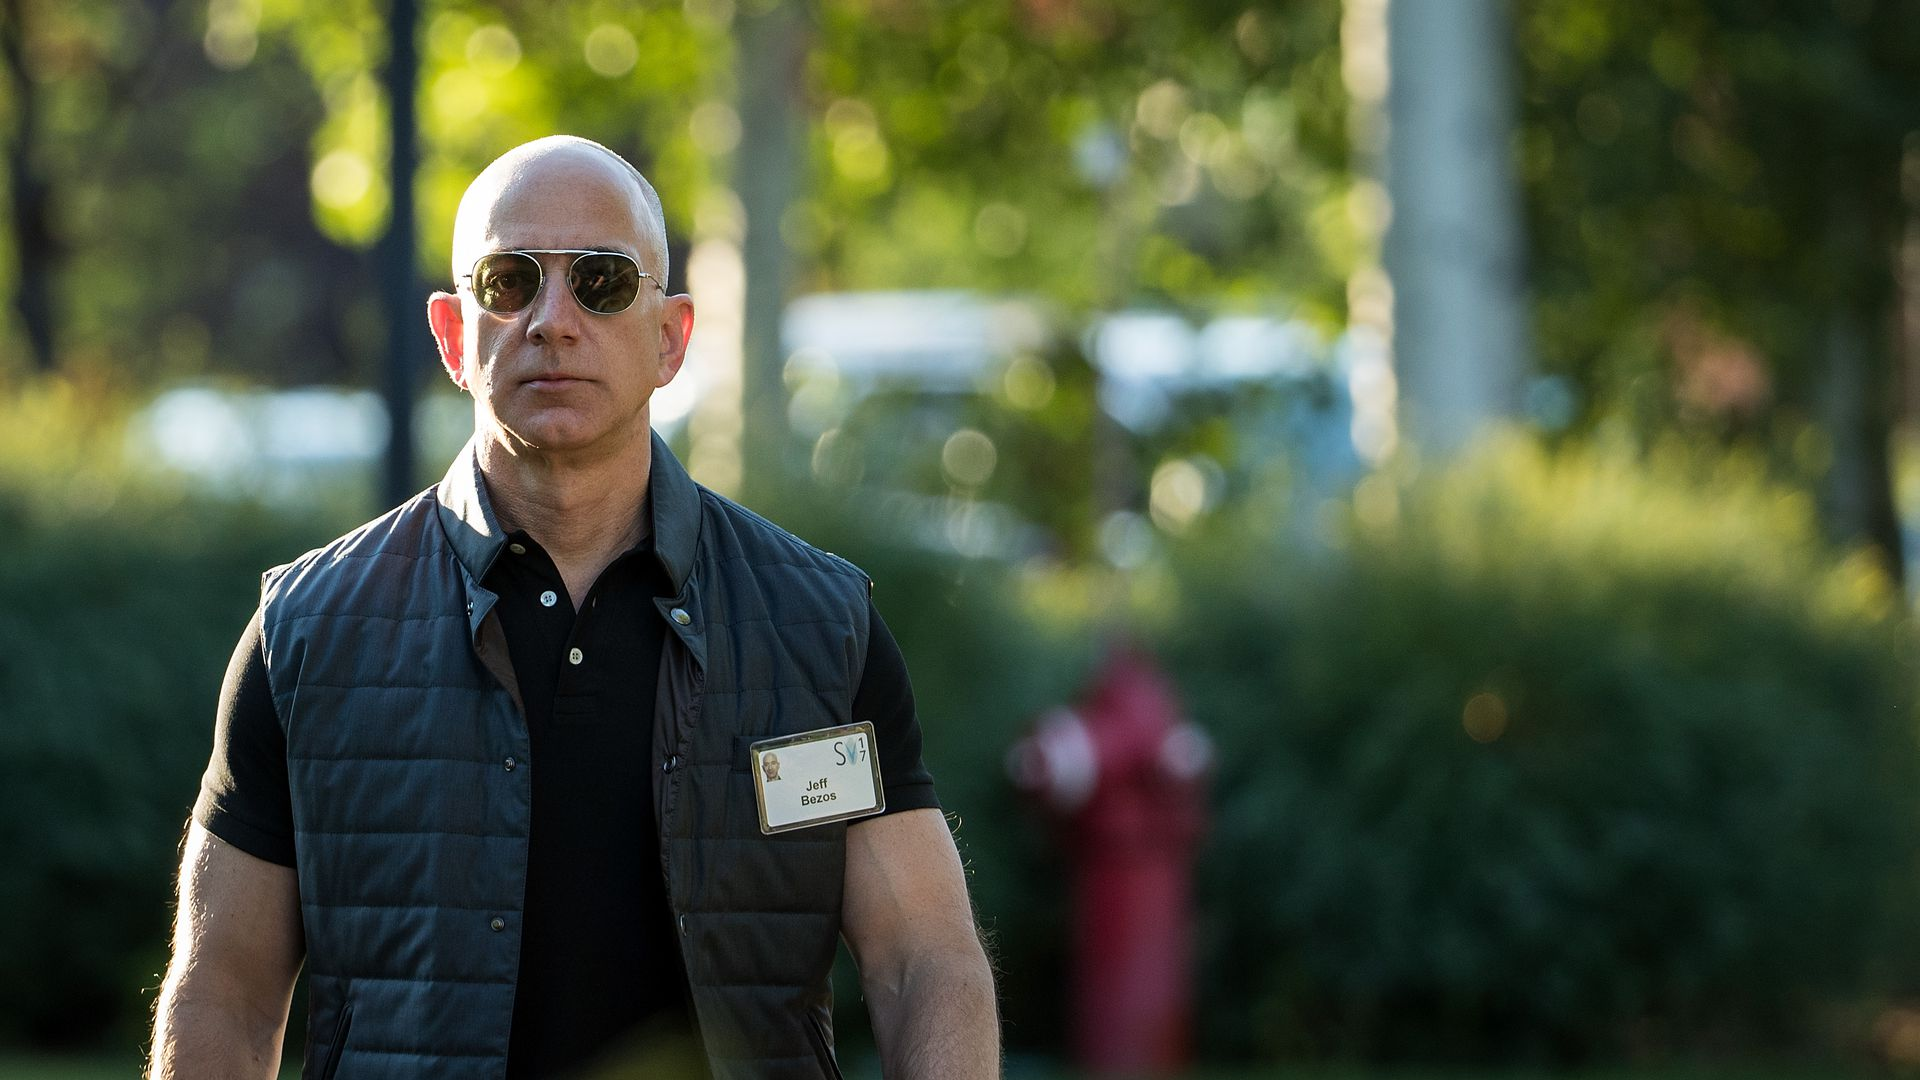 Amazon founder Jeff Bezos walks outside in a short-sleeved polo shirt and vest